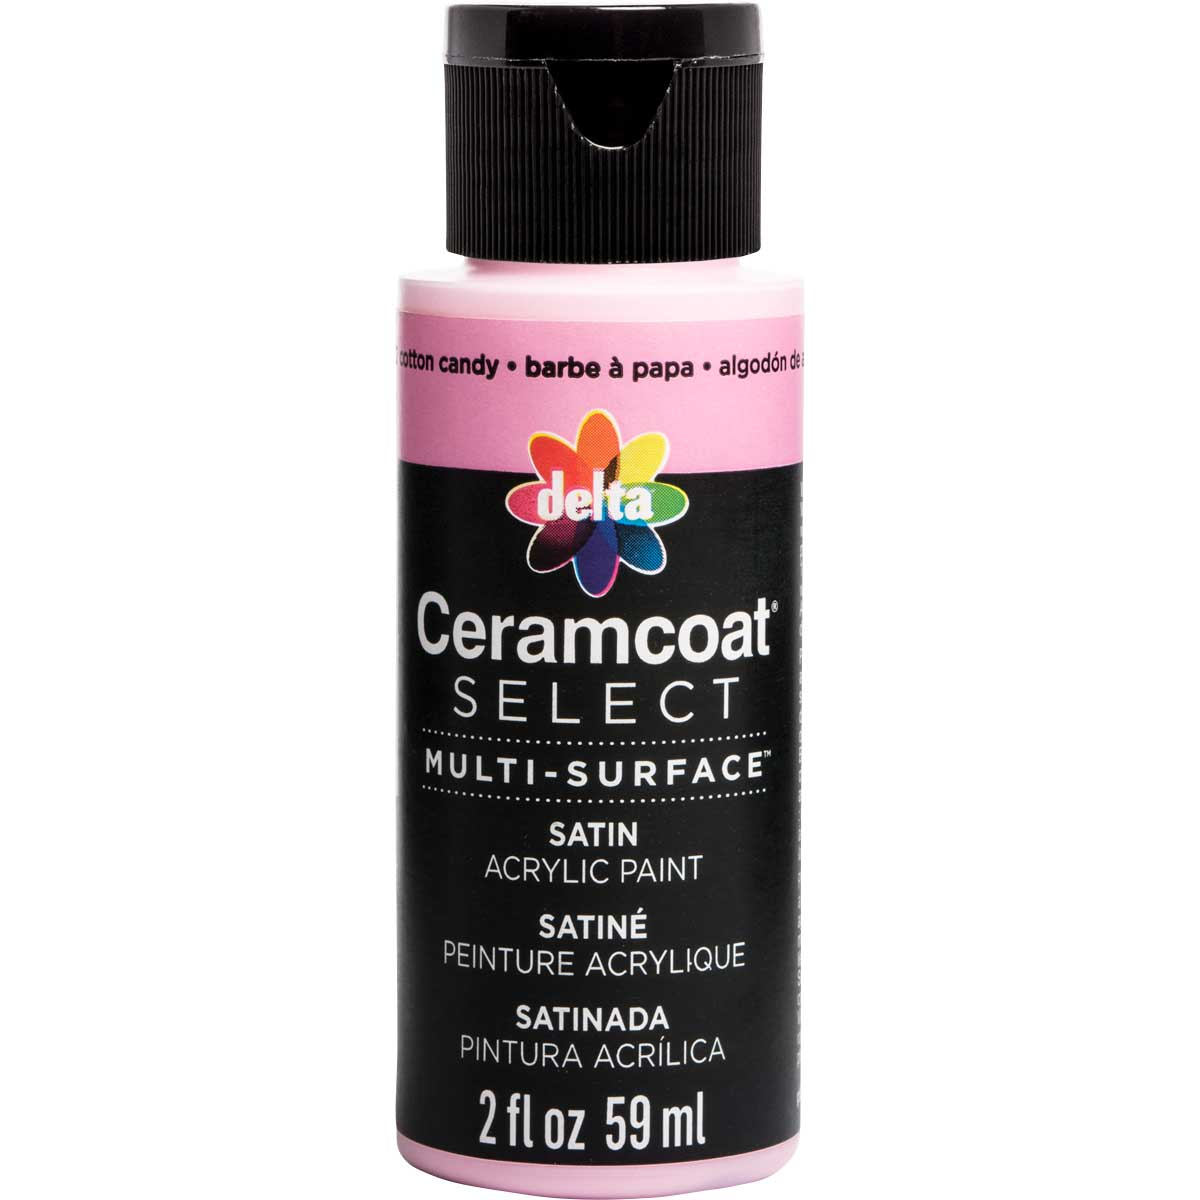 Delta Ceramcoat ® Select Multi-Surface Acrylic Paint - Satin - Cotton Candy, 2 oz.